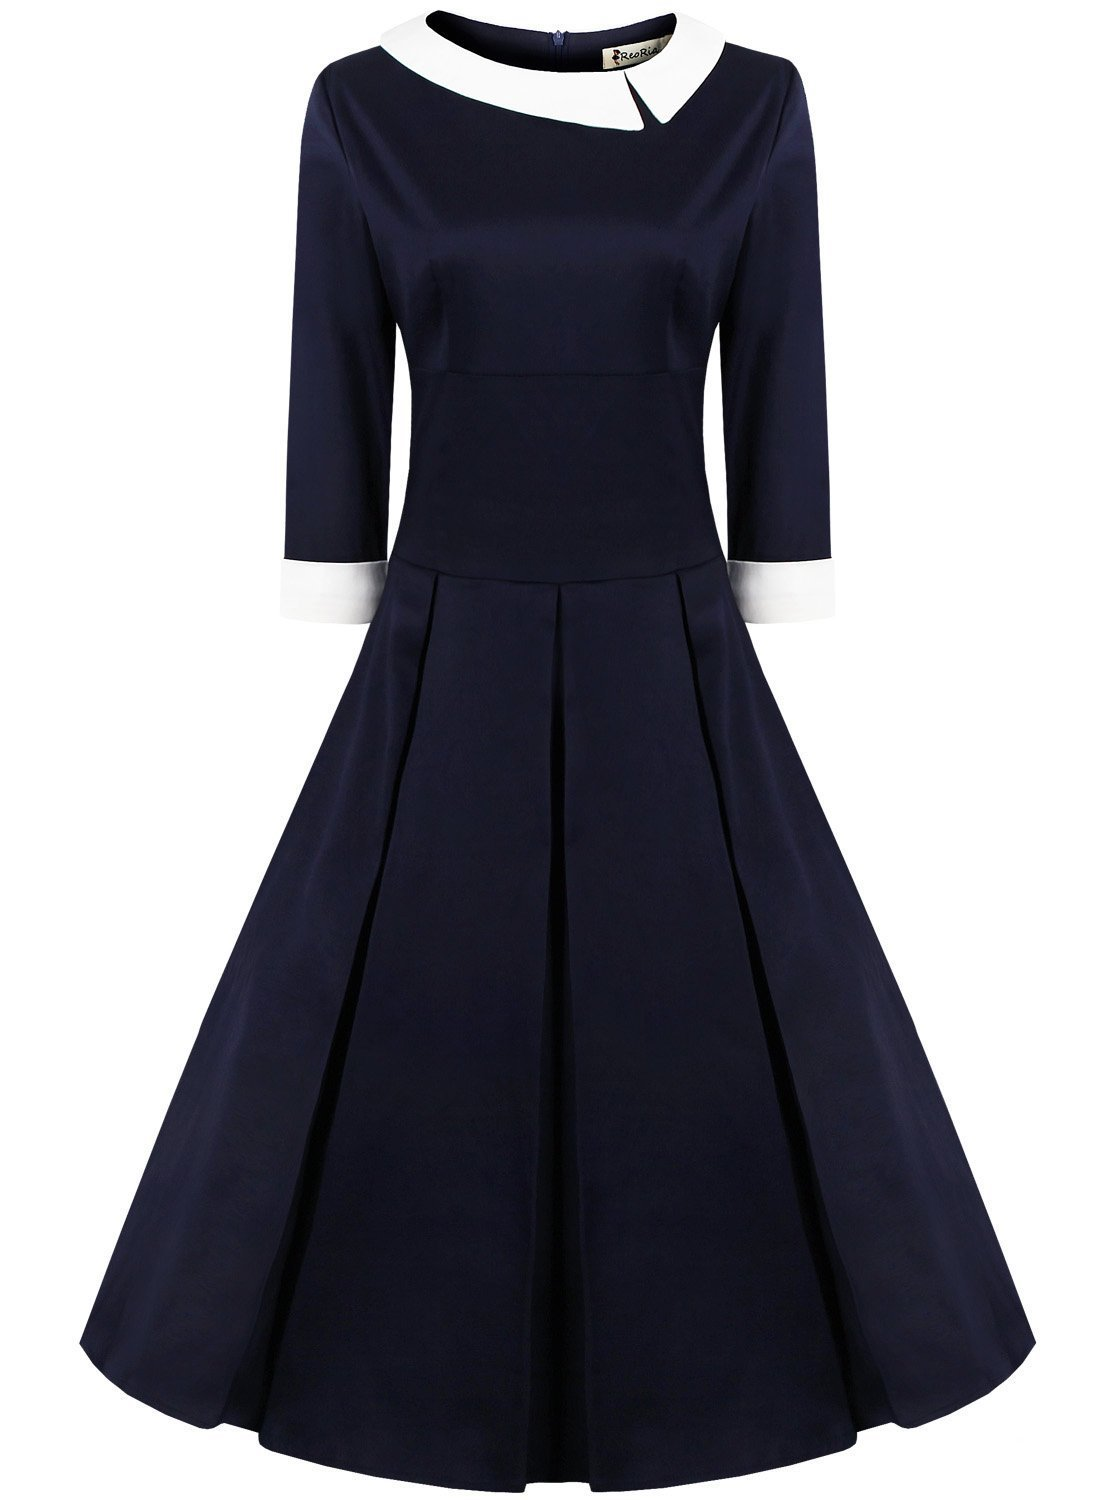 Women's 50s 60s Style Rockabilly Pinup 3/4 Sleeve Wear to Work Elegant Swing Vintage Dress Navy Blue X-Large